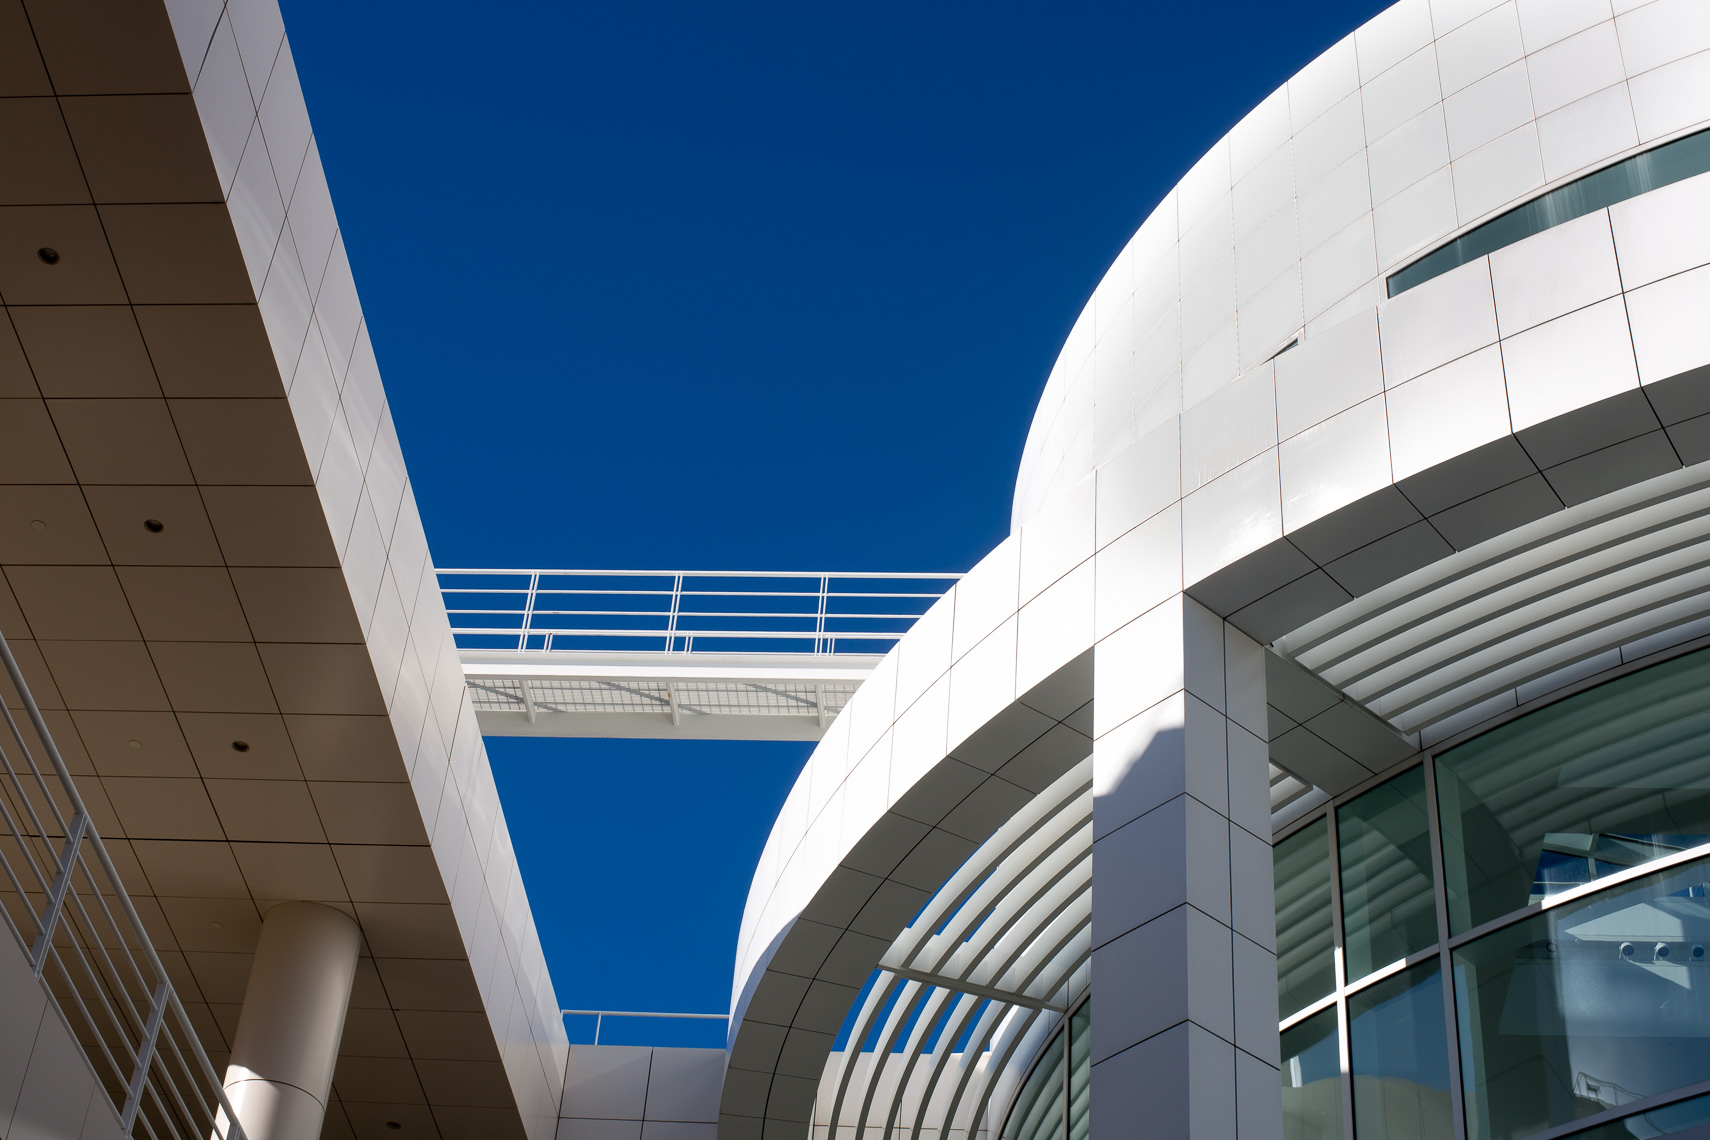 Detail of white circular building against a blue sky